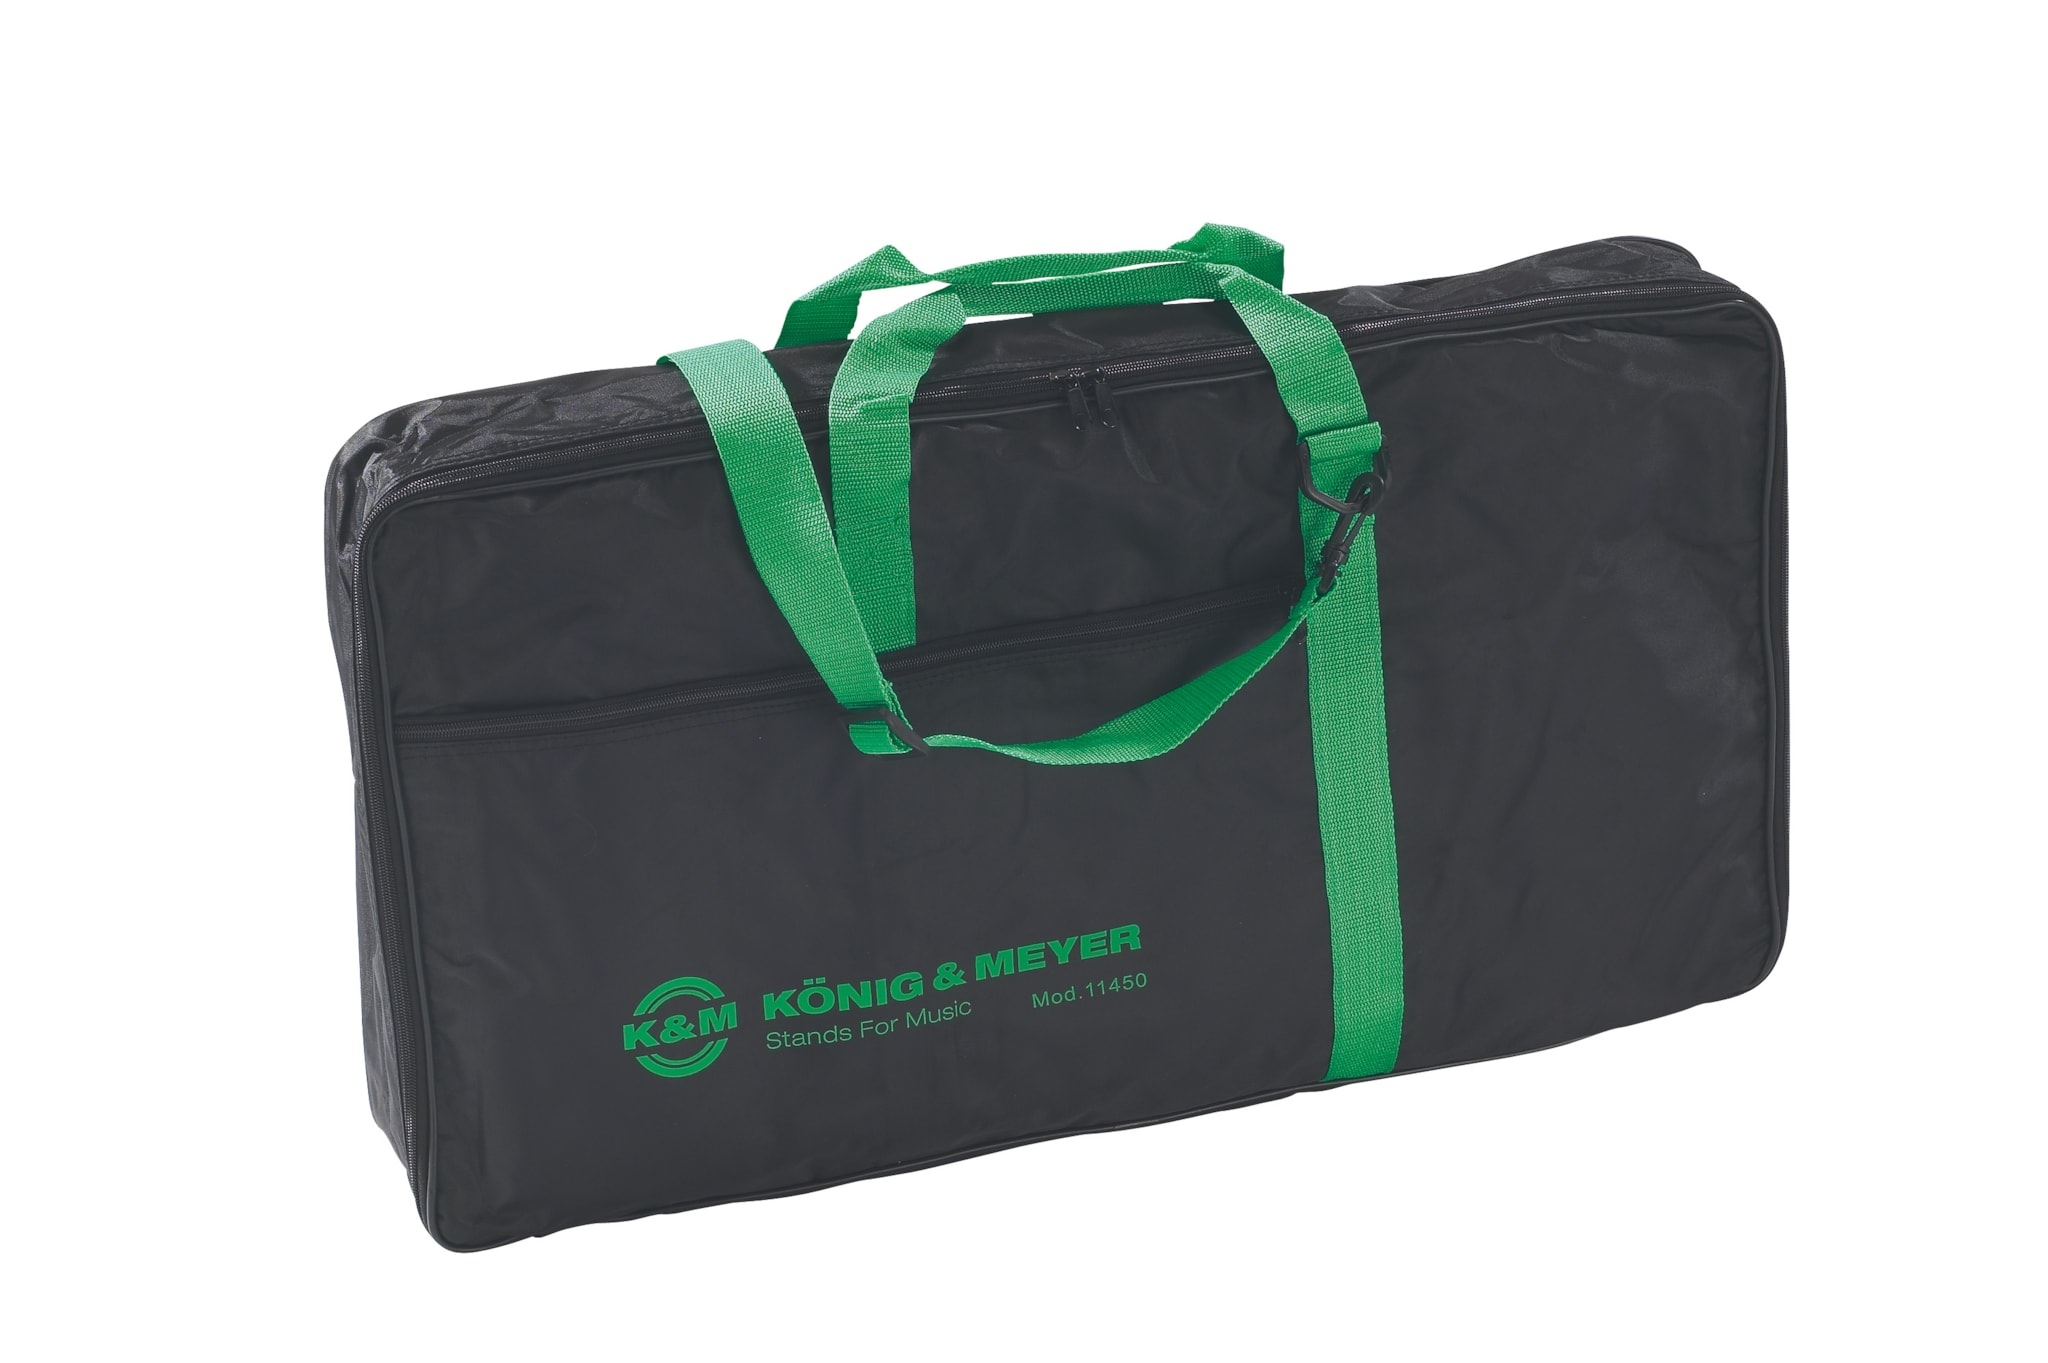 KM11450 - Carrying case for music stand